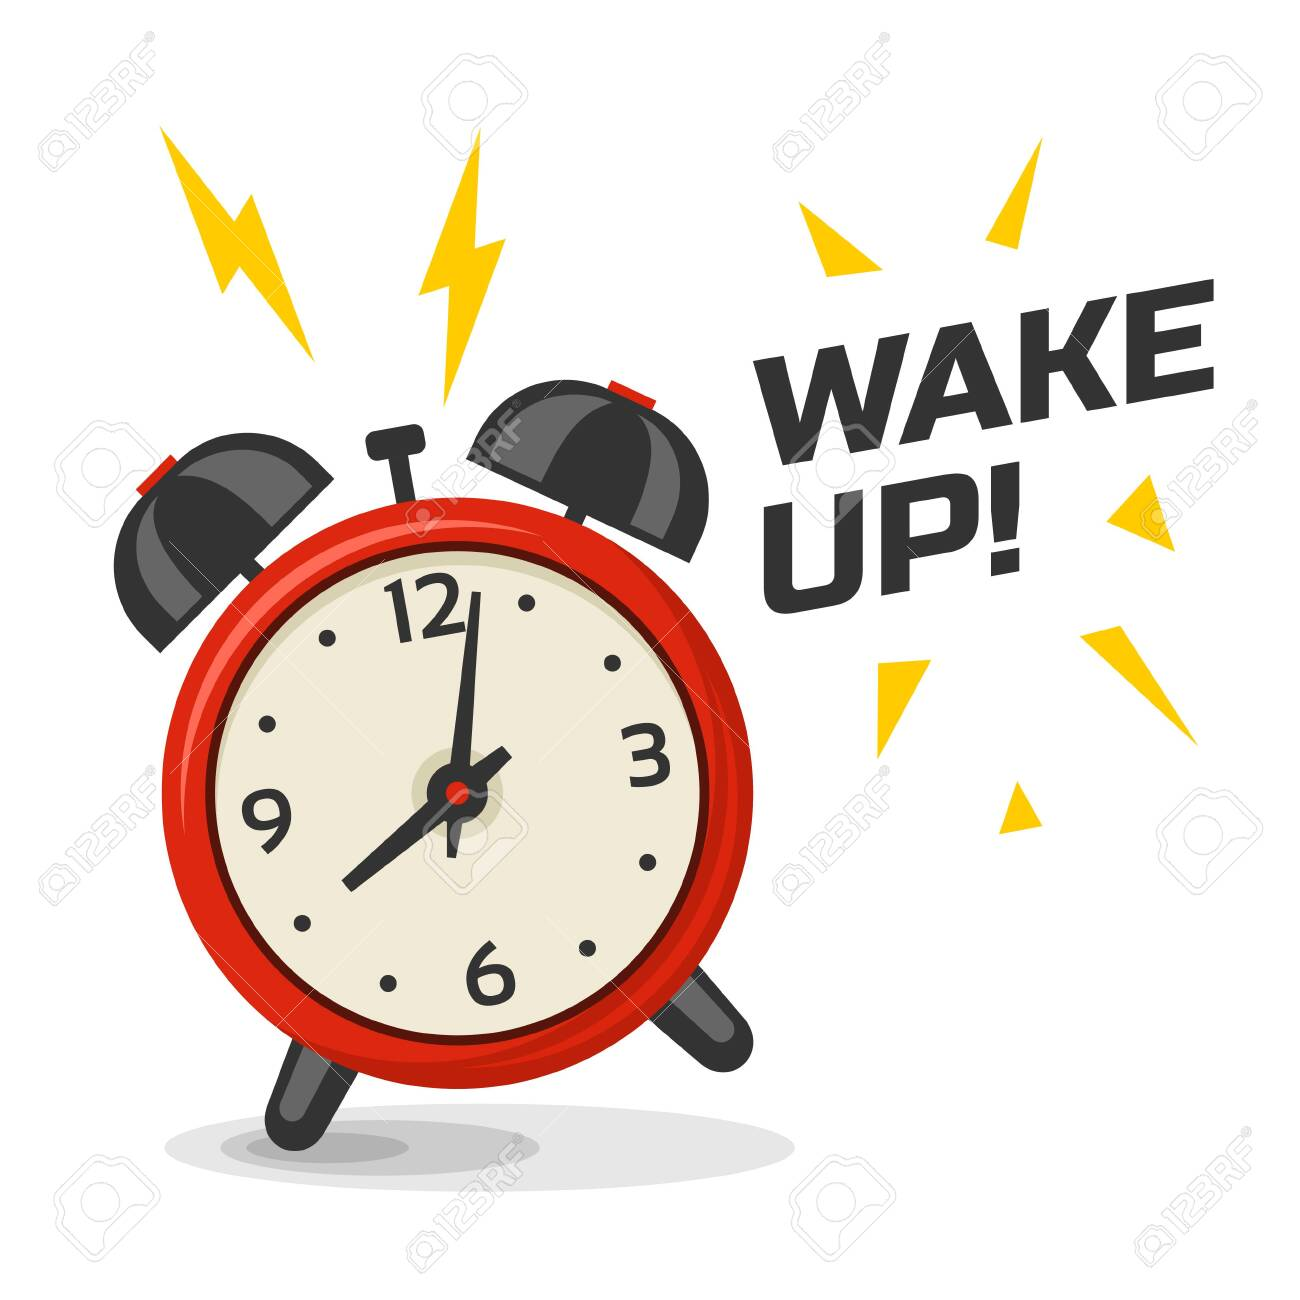 Wake up alarm clock with two bells vector illustration. Cartoon isolated dinamic image, red and yellow color morning alarm clock - 130788797